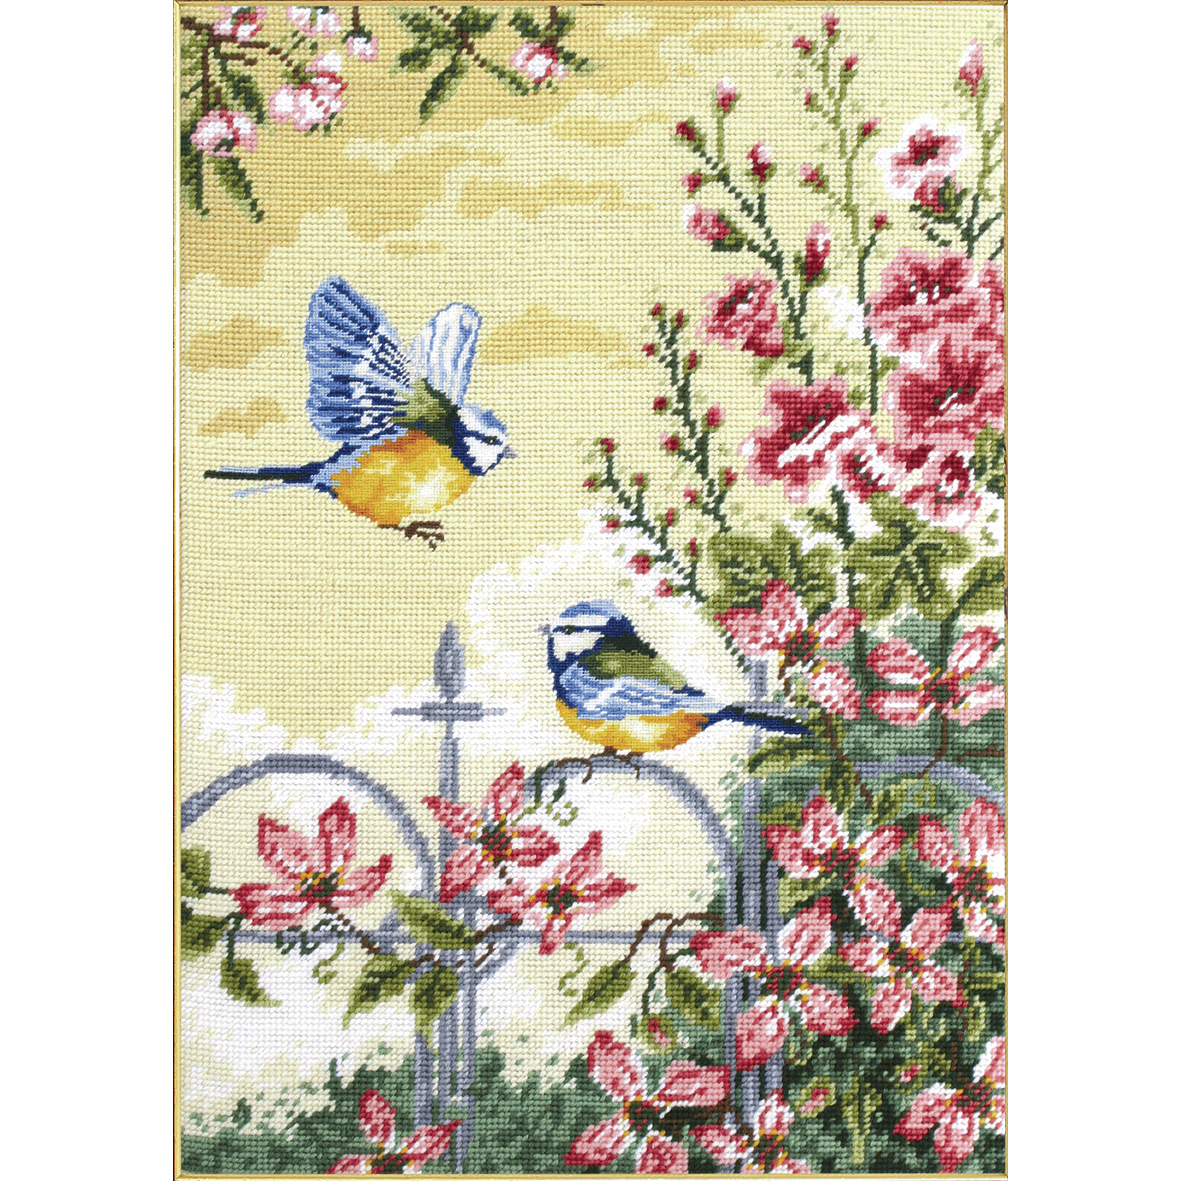 Dimensions Needlepoint Tapestry Kit Floral Railings Blue Tits Birds